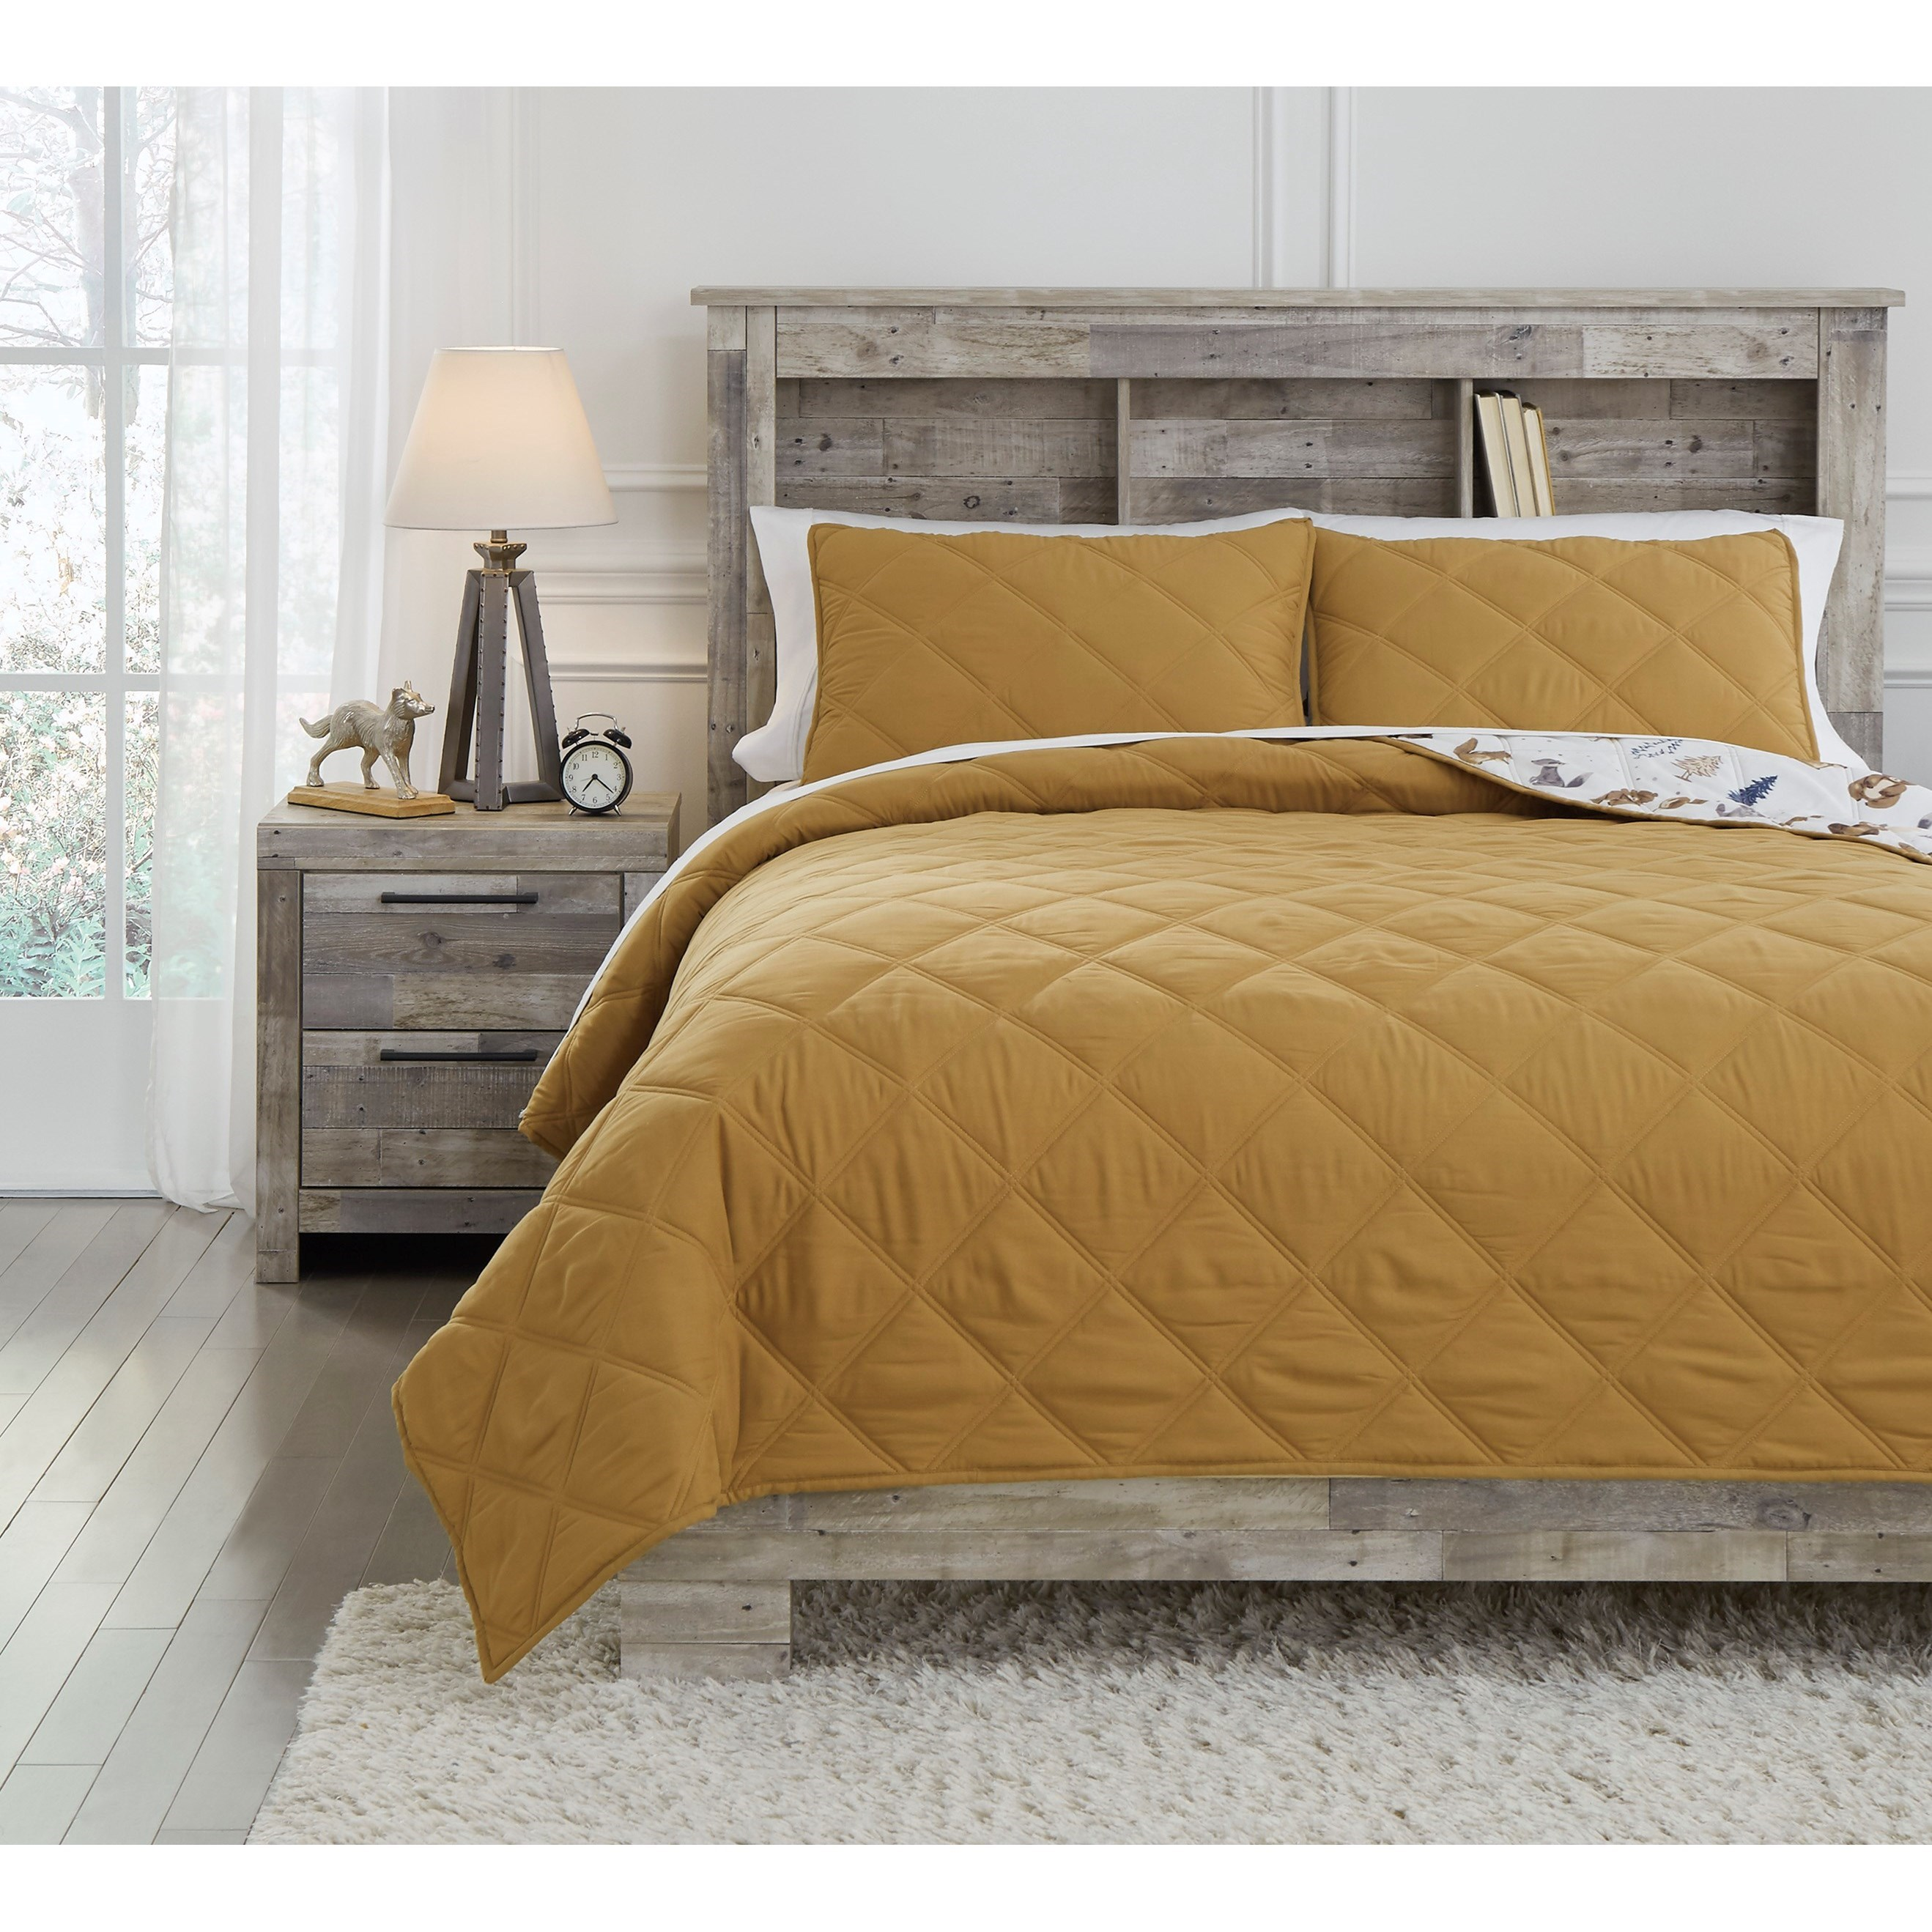 Bedding Sets Full Cooperlen Golden Brown Quilt Set by Signature Design by Ashley at Standard Furniture